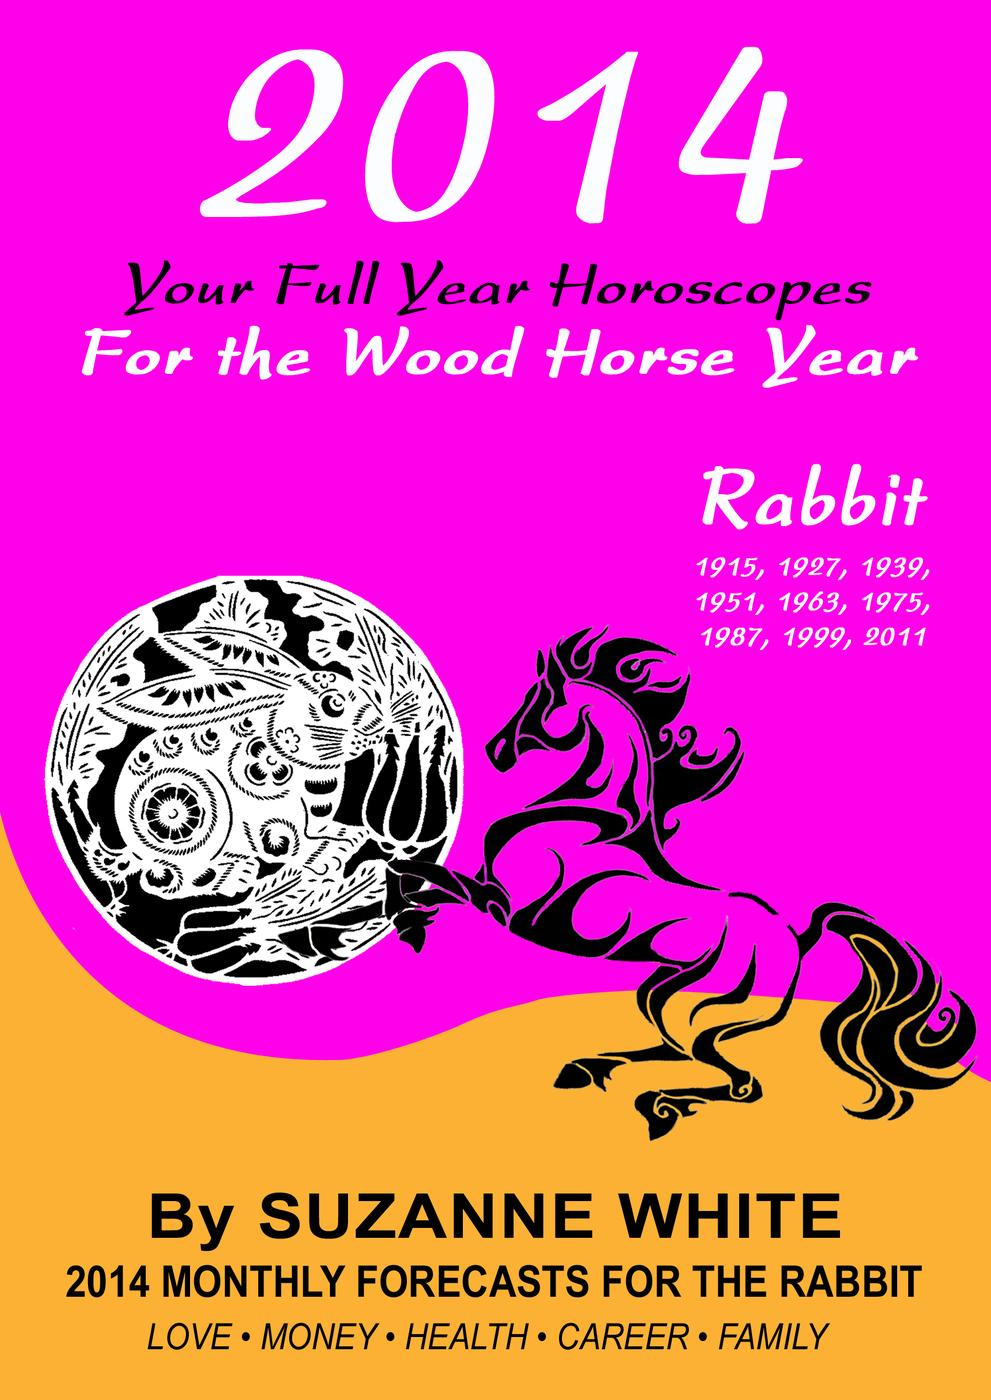 Suzanne White - 2014 CAT/RABBIT Your Full Year Horoscopes  For The Wood Horse Year